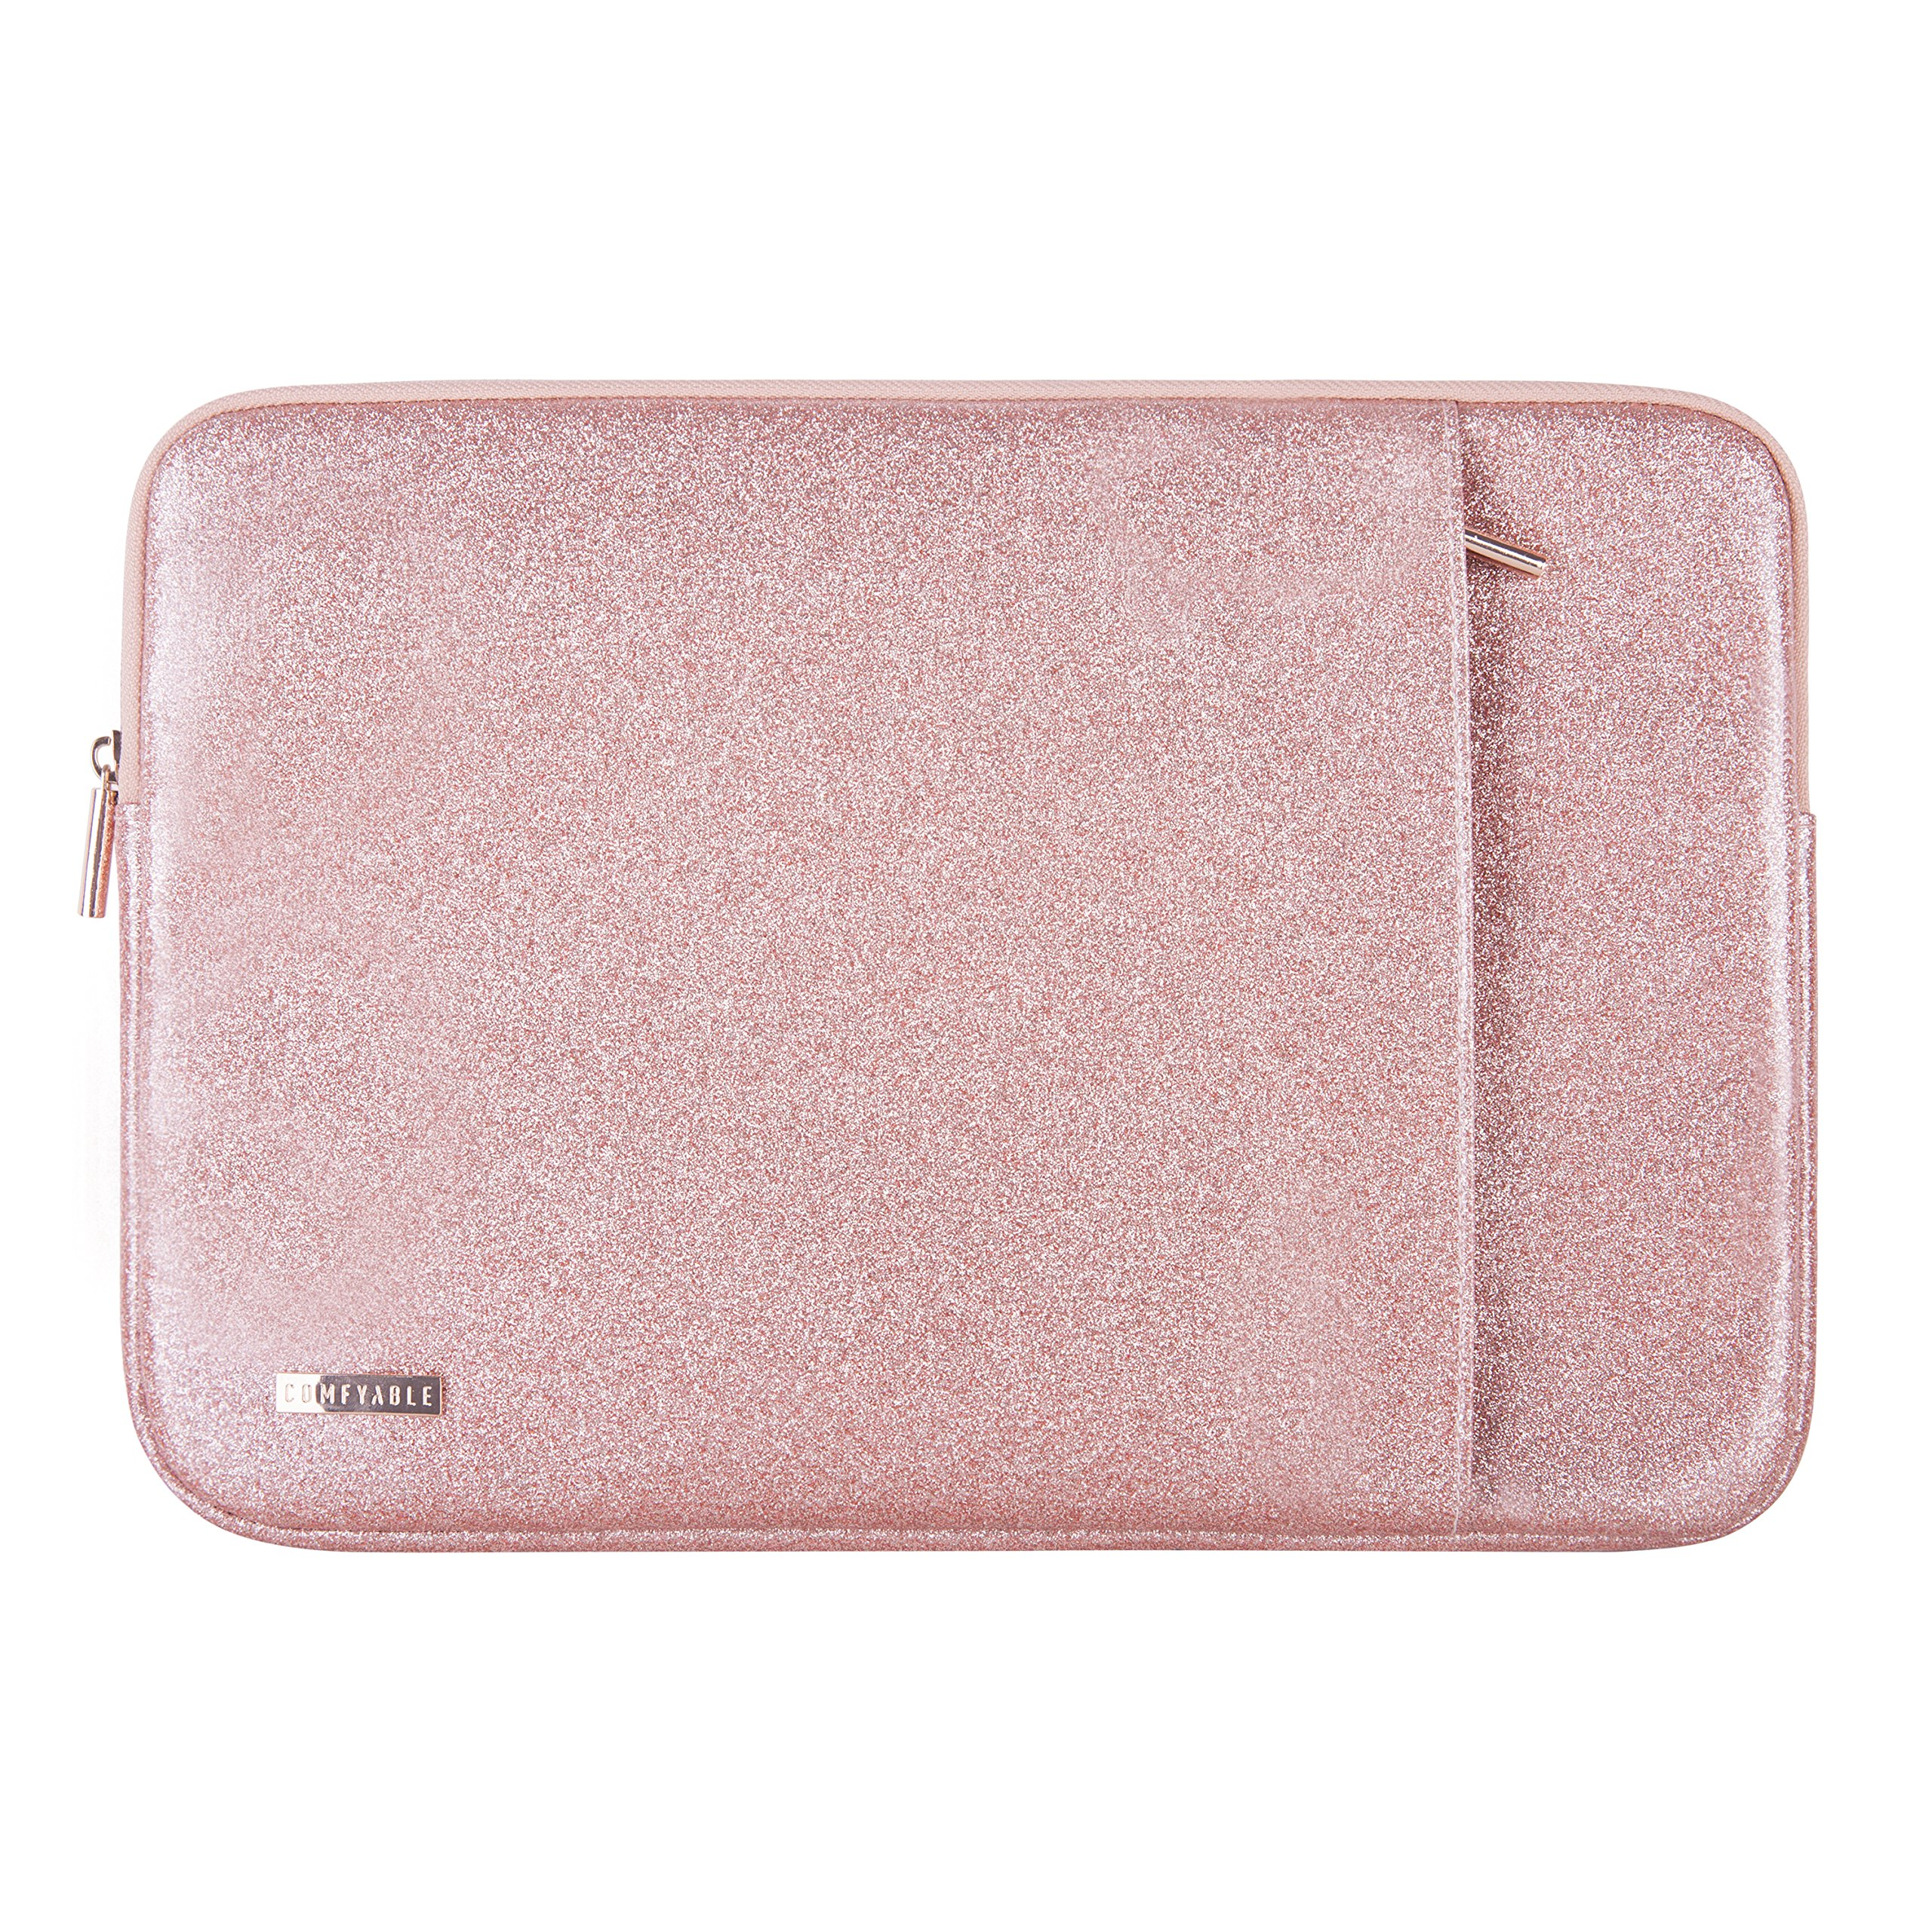 Comfyable Laptop Sleeve for MacBook Pro 13-13.3 Inch & Mac Air 13-13.3'', Notebook Computer Case w/Pocket- Waterproof & Soft Cover- Rose Gold Pink Glitter